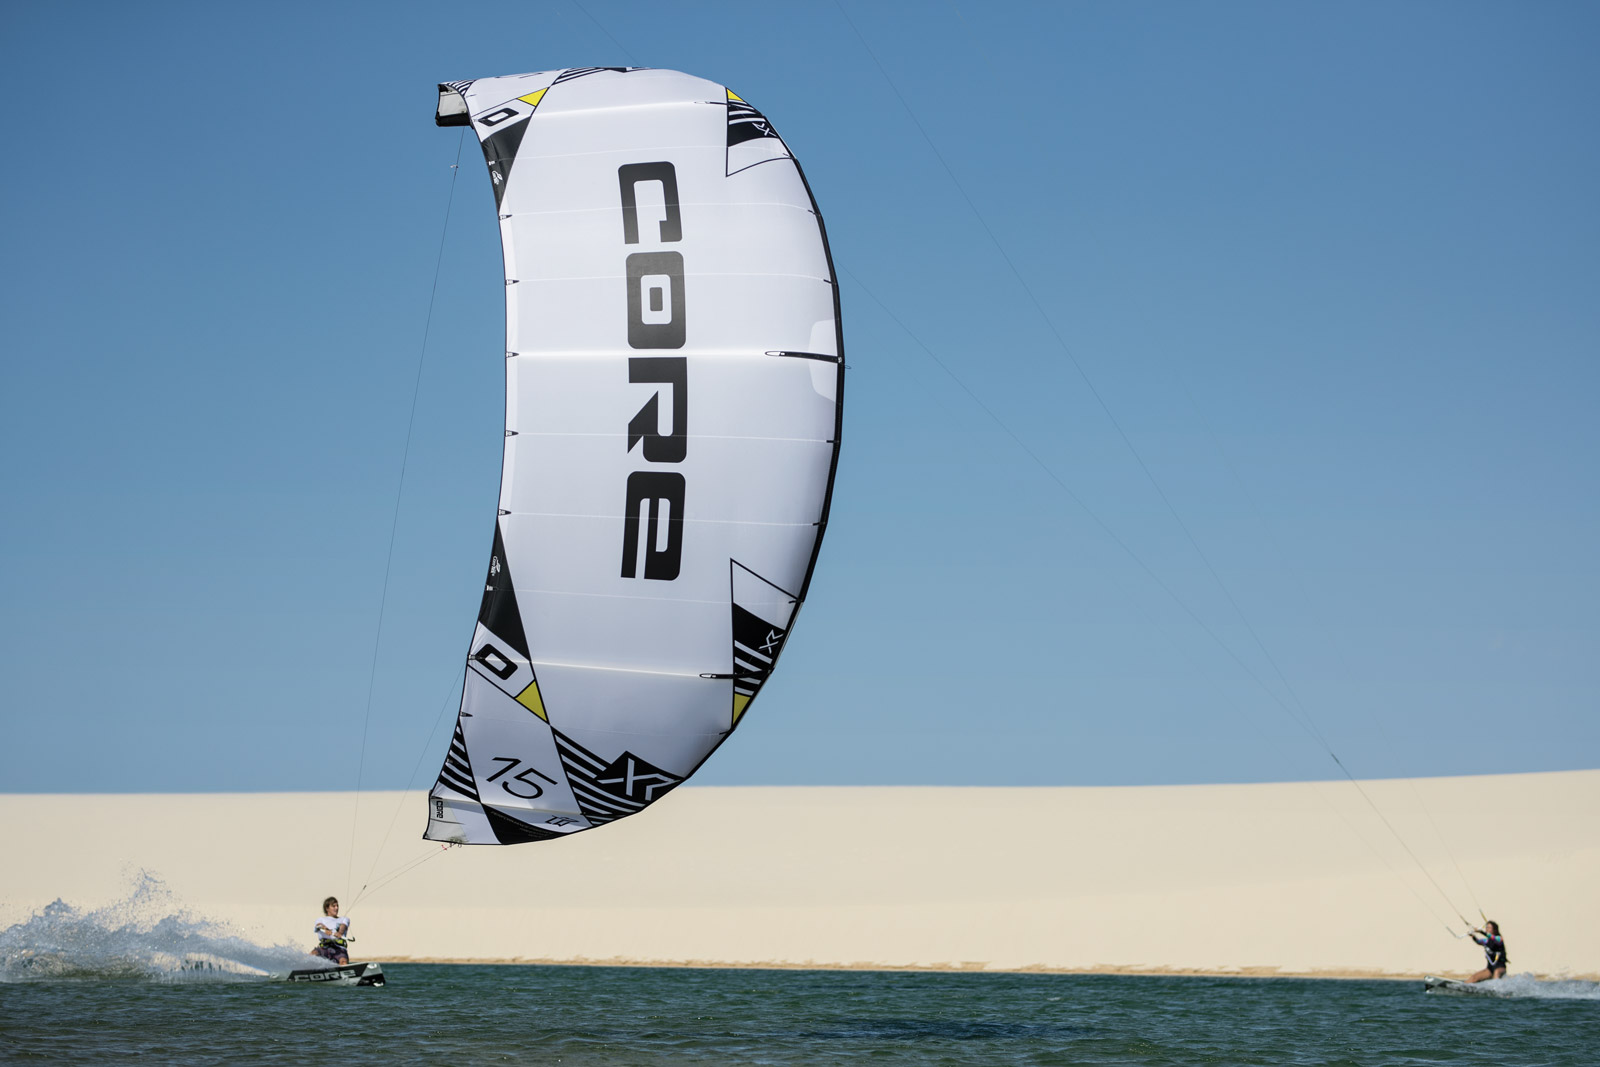 Just released from Core Kiteboarding: New Core XR6 and XR6 LW Kites